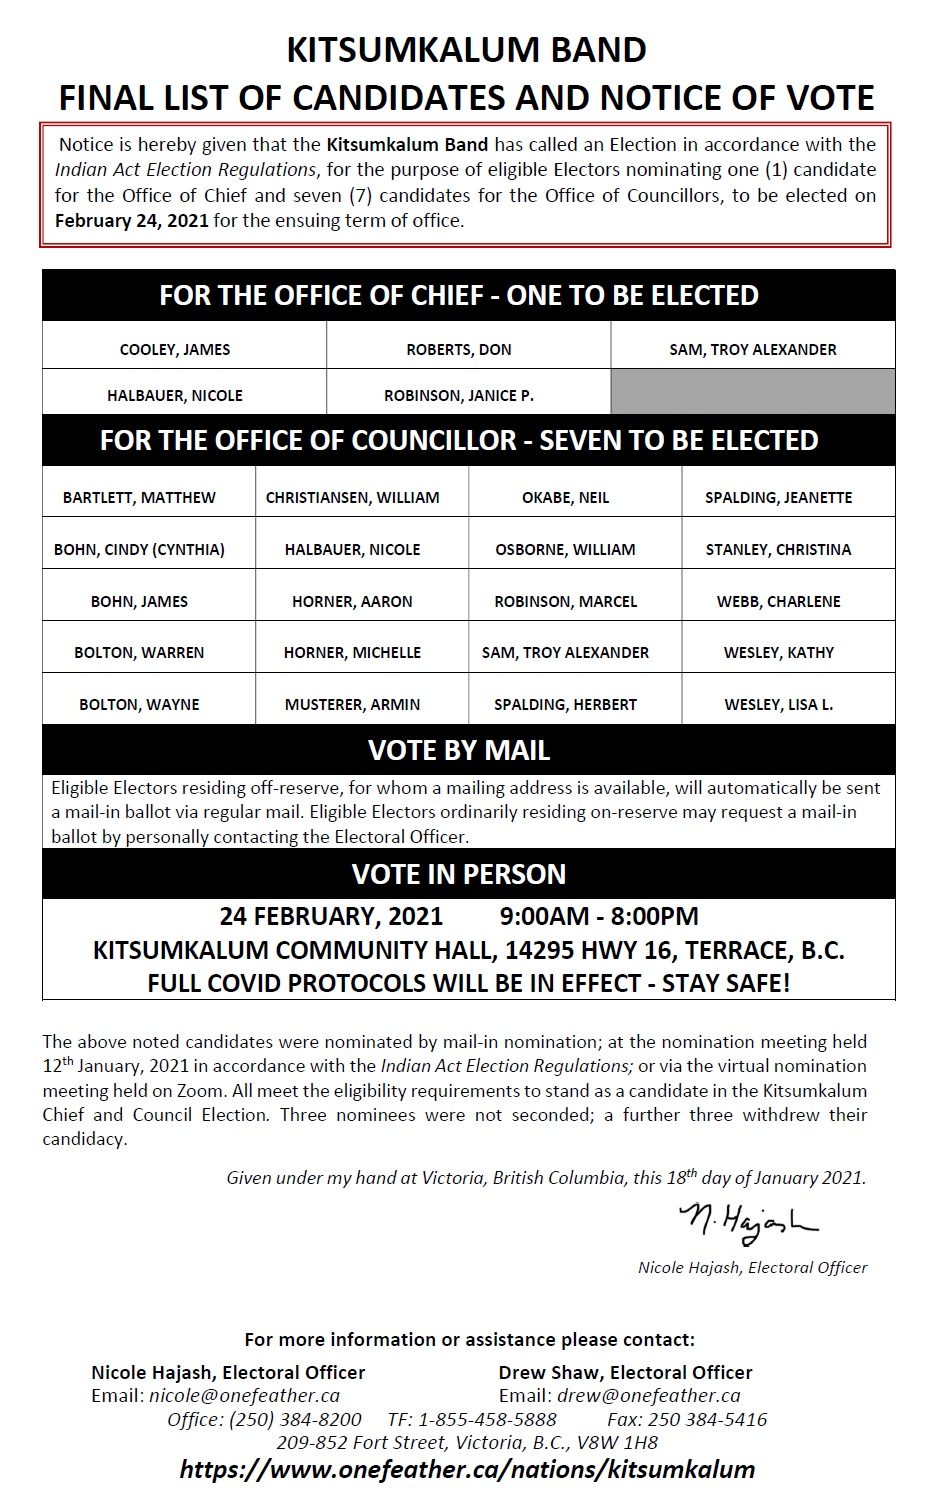 Kitsumkalum Band Final List of Candidates and Notice of Vote